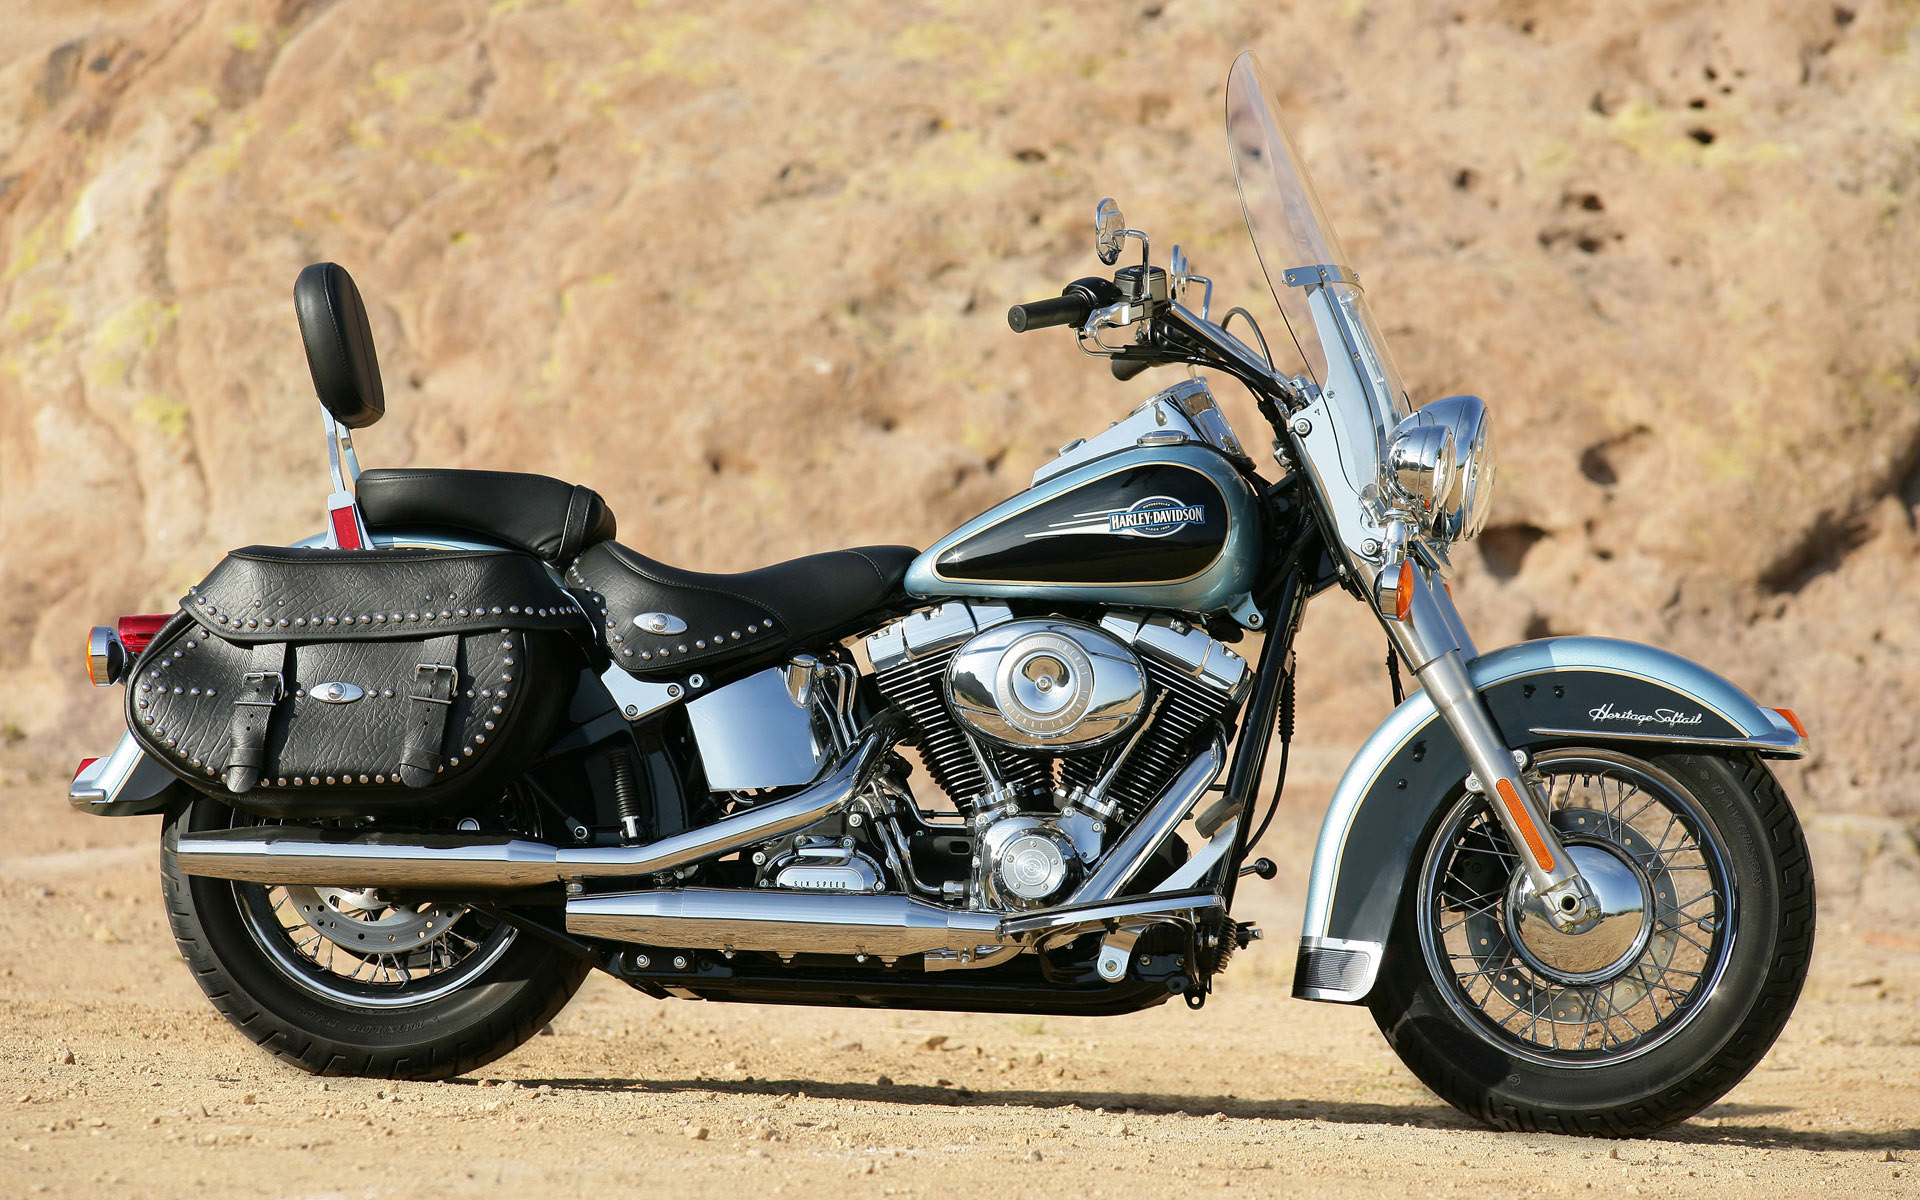 Harley Davidson Heritage Softail Classic Wallpaper 132492